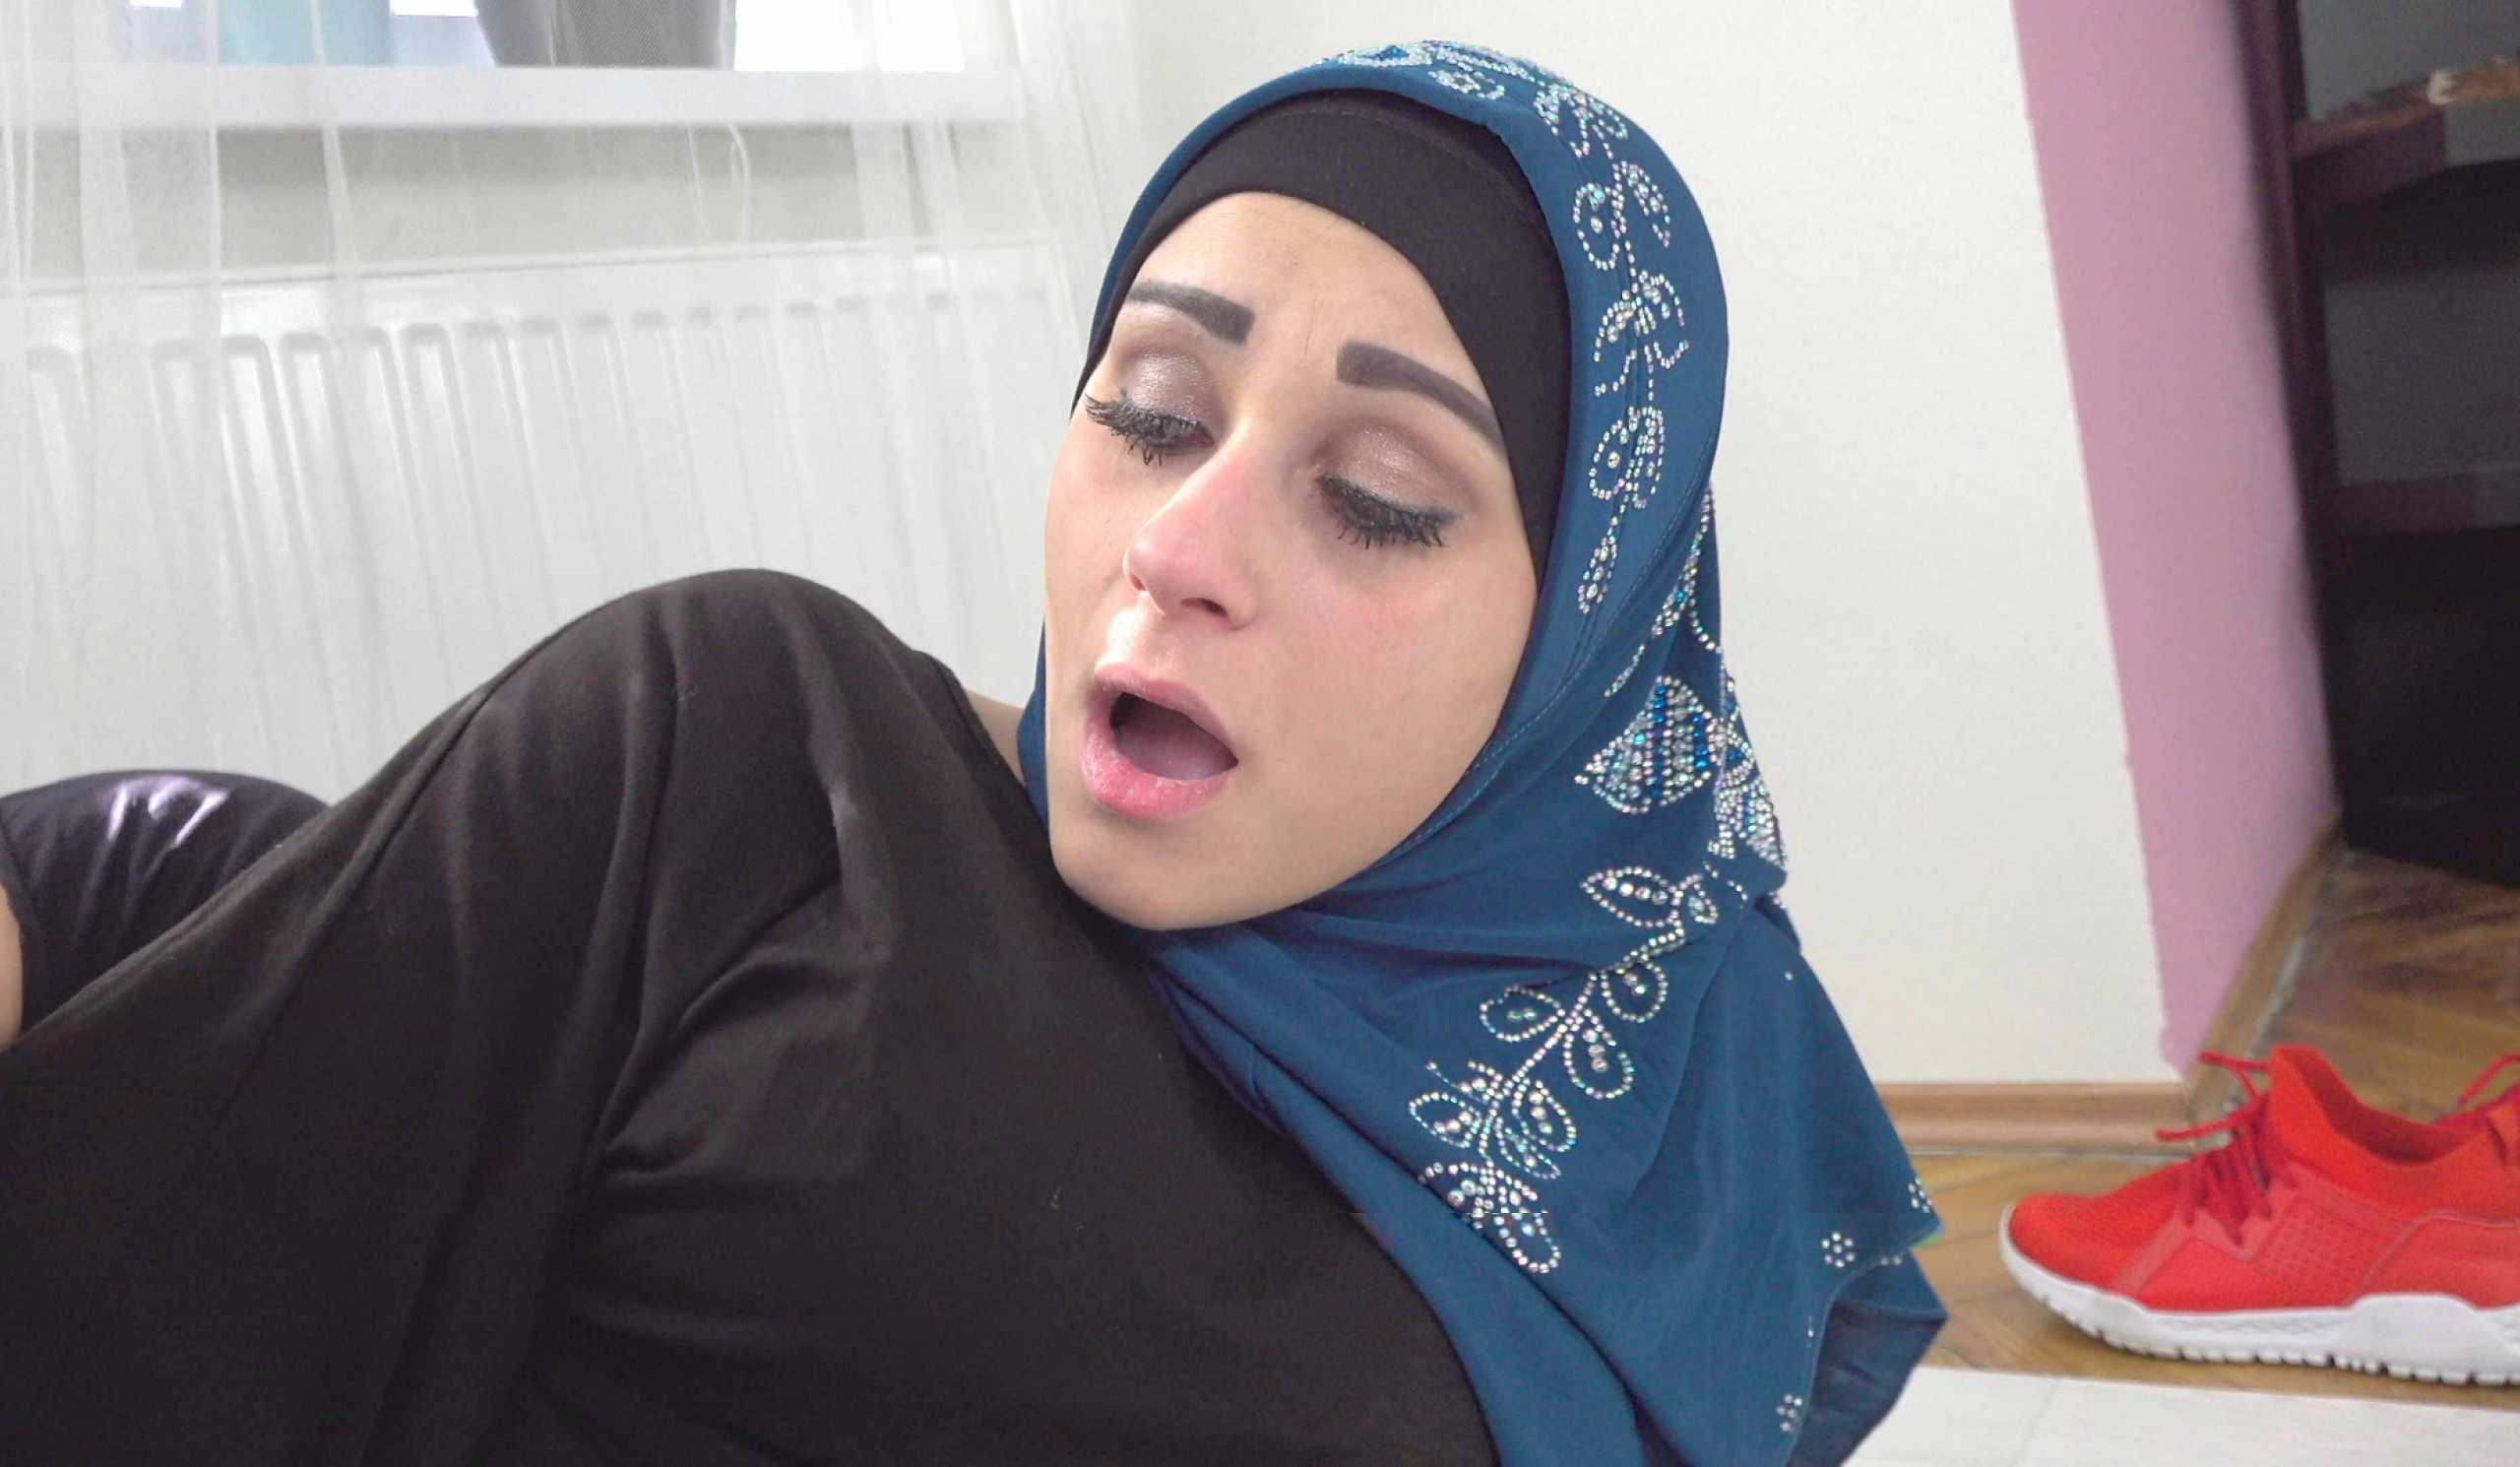 [SexWithMuslims] Klaudia Diamond (Muslim Woman Got The Cock In Her Mouth Instead Of A Prayer / 04.24.2020)